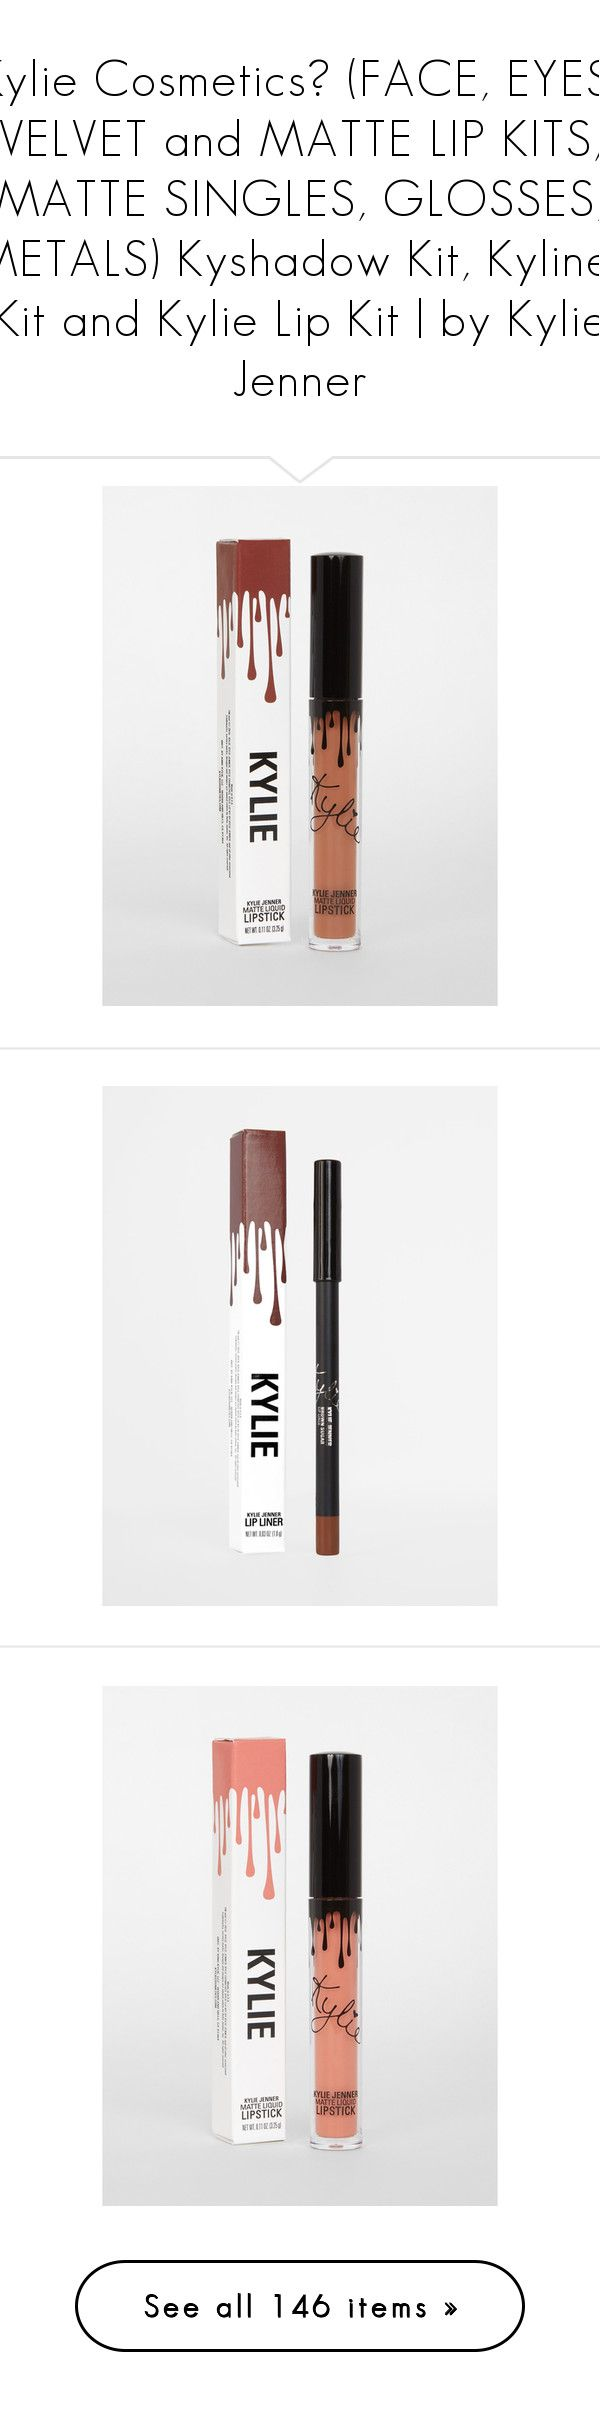 """""""Kylie Cosmetics℠ (FACE, EYES, VELVET and MATTE LIP KITS, MATTE SINGLES, GLOSSES, METALS) Kyshadow Kit, Kyliner Kit and Kylie Lip Kit 